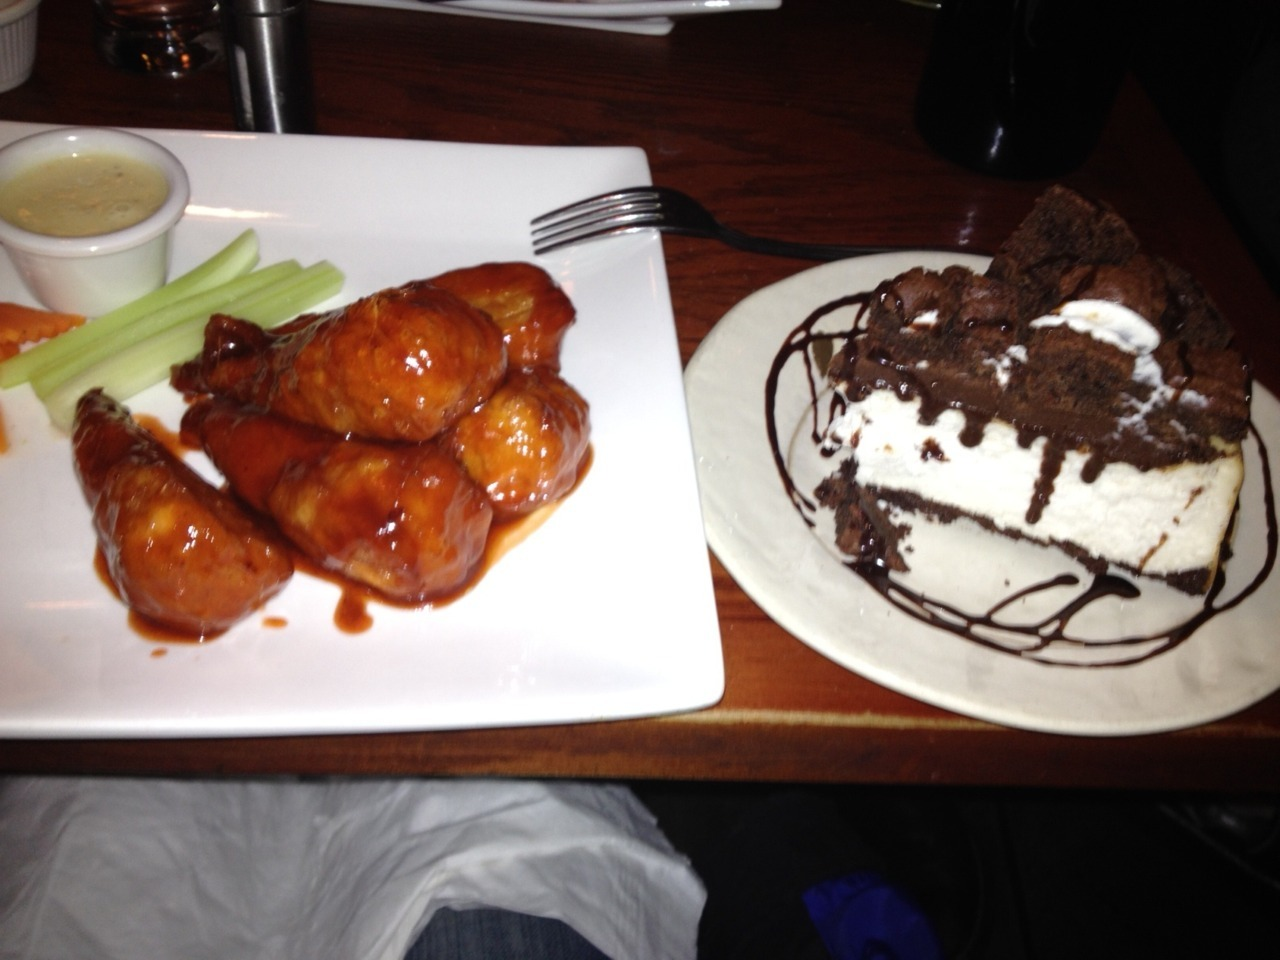 Vegan Brownie Bottom Cheesecake & buffalo wings. Sometimes a girl just wants her comfort food.